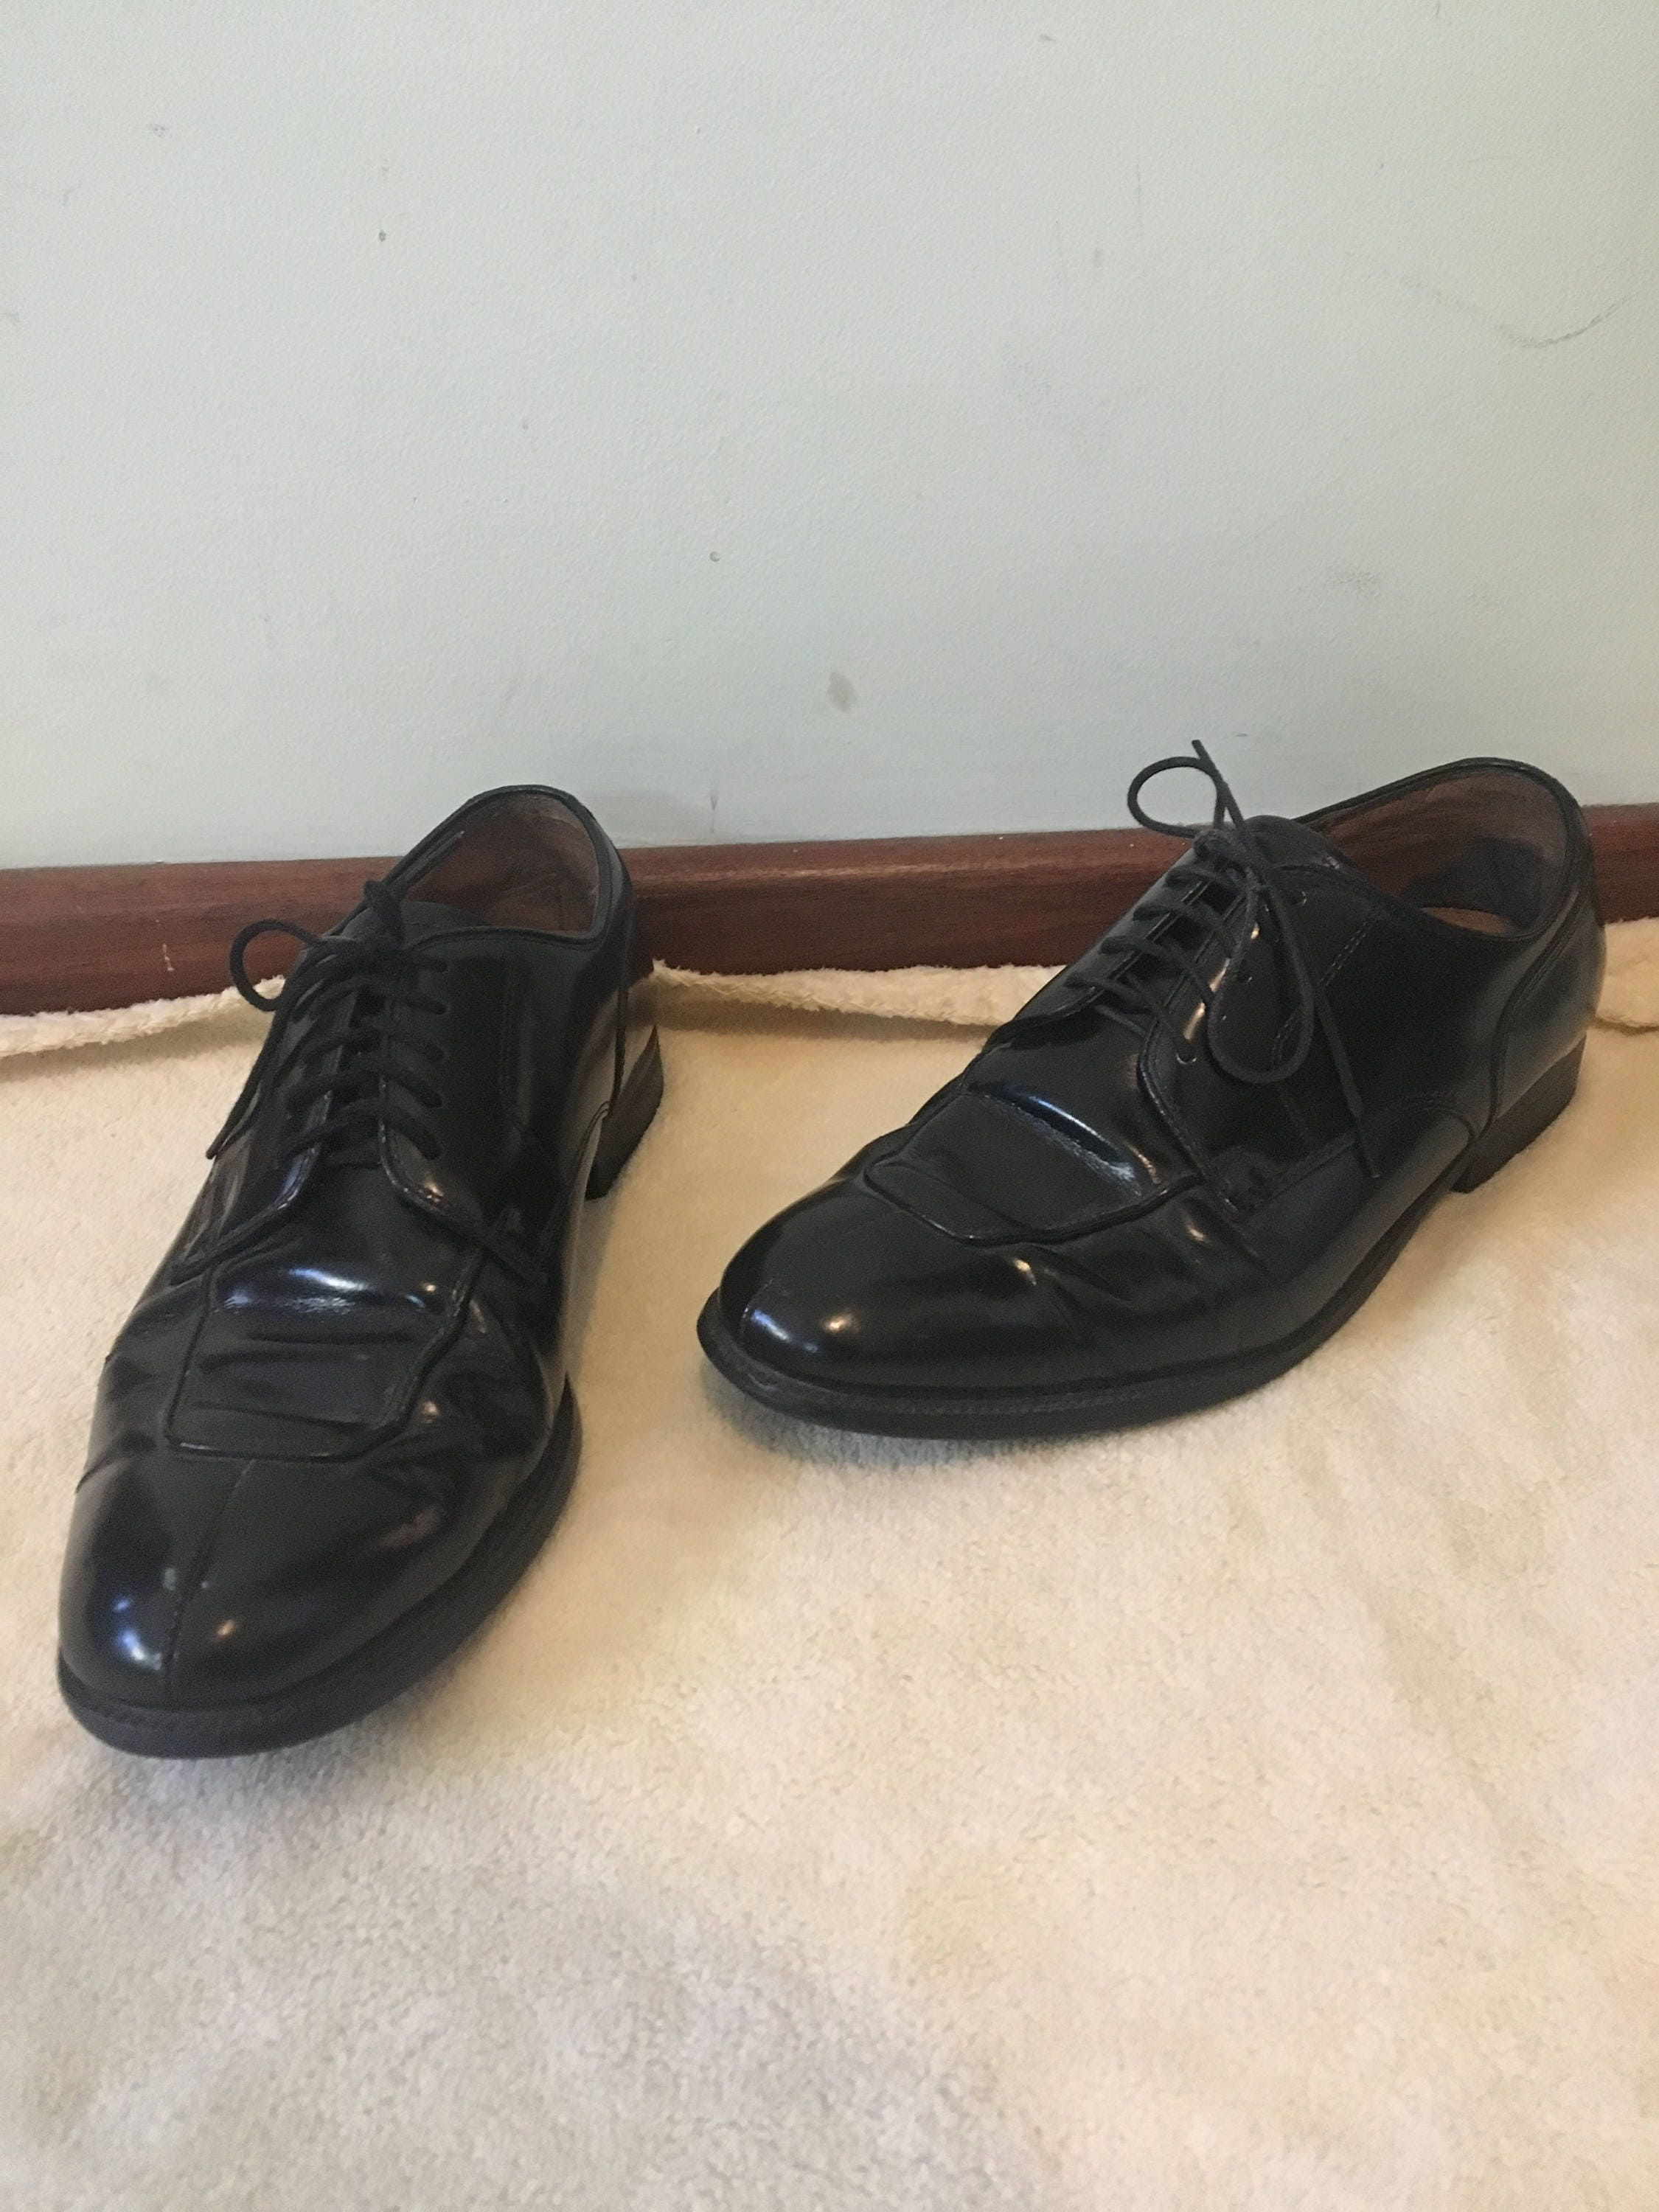 Vintage Regal Mens Black Patent Leather Shoe Mens Regal Size 9.5-10.5 6fa79d